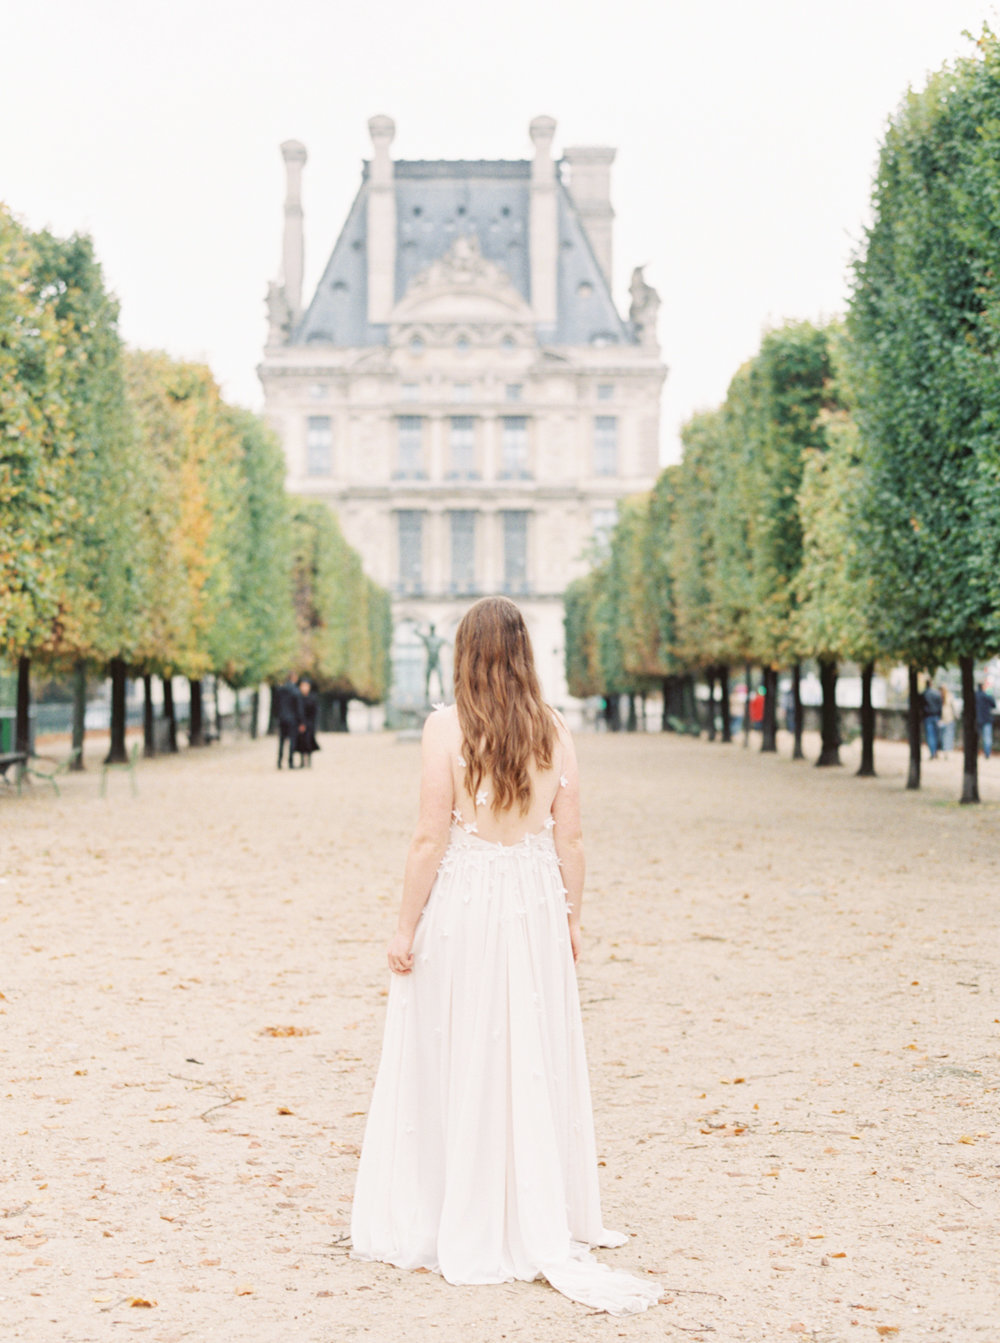 Paris elopement at the Louvre | Molly Carr Photography | Paris film photographer | France wedding photographer | Elopement in France | Elizabeth Leese gown